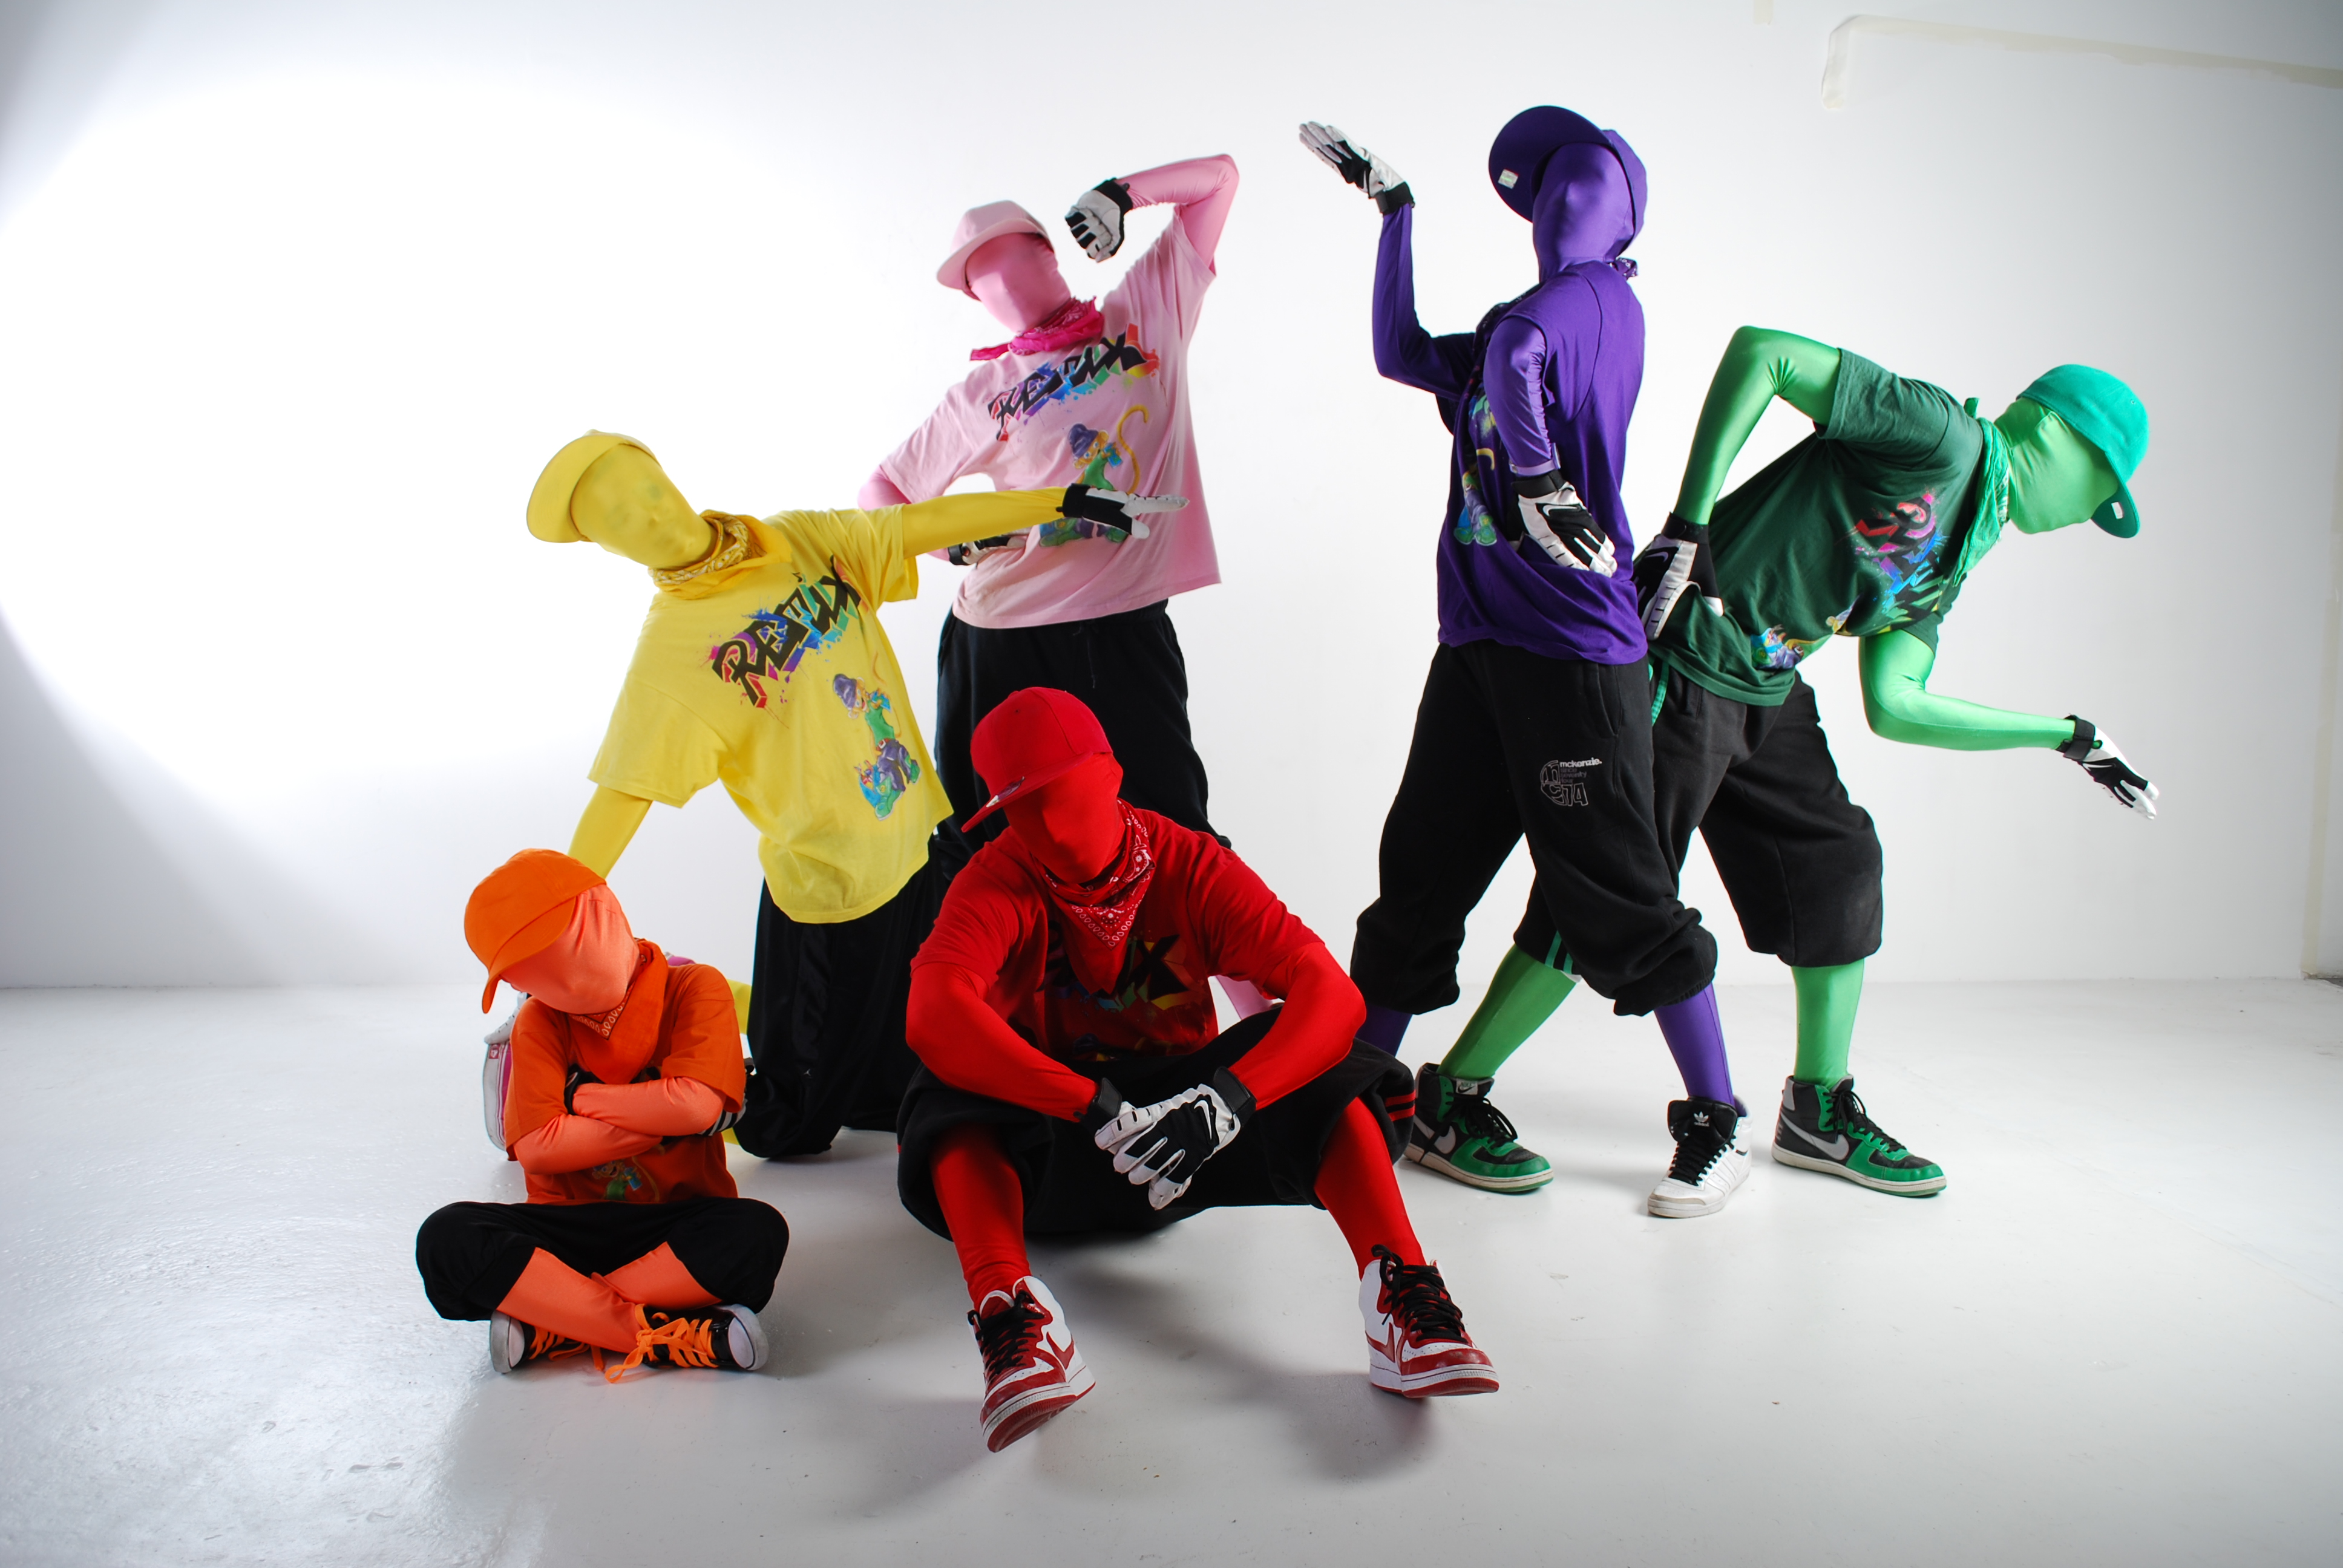 thesis on hip hop dance Search essay examples browse by category  hip hop essay examples  the history and influence of hip hop dance 685 words 2 pages.